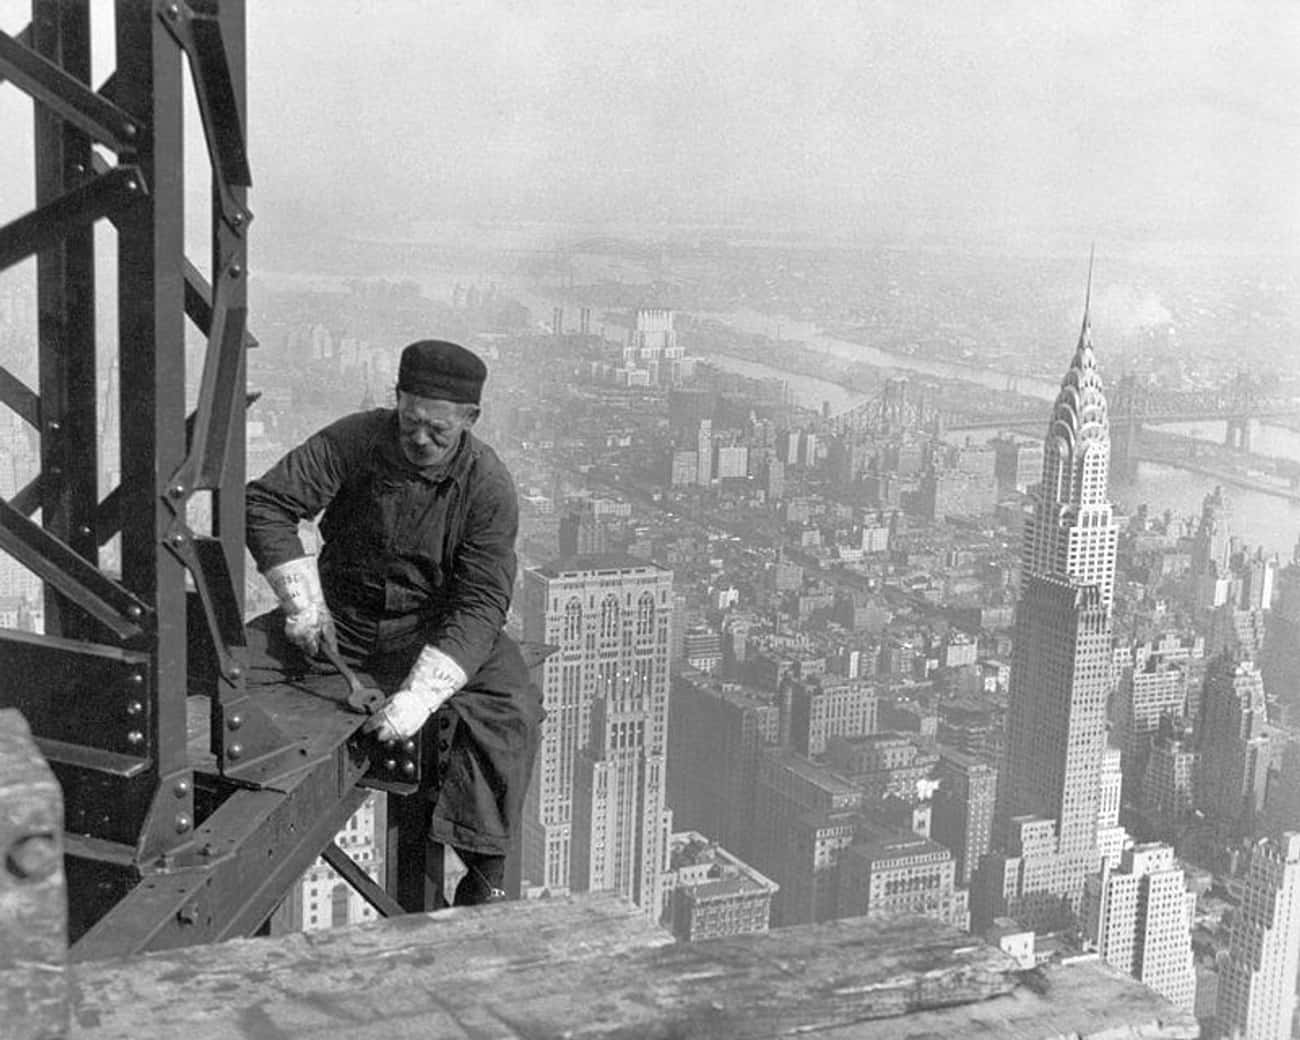 Empire State Building Construc is listed (or ranked) 1 on the list 15 Beautiful Old New York Photos